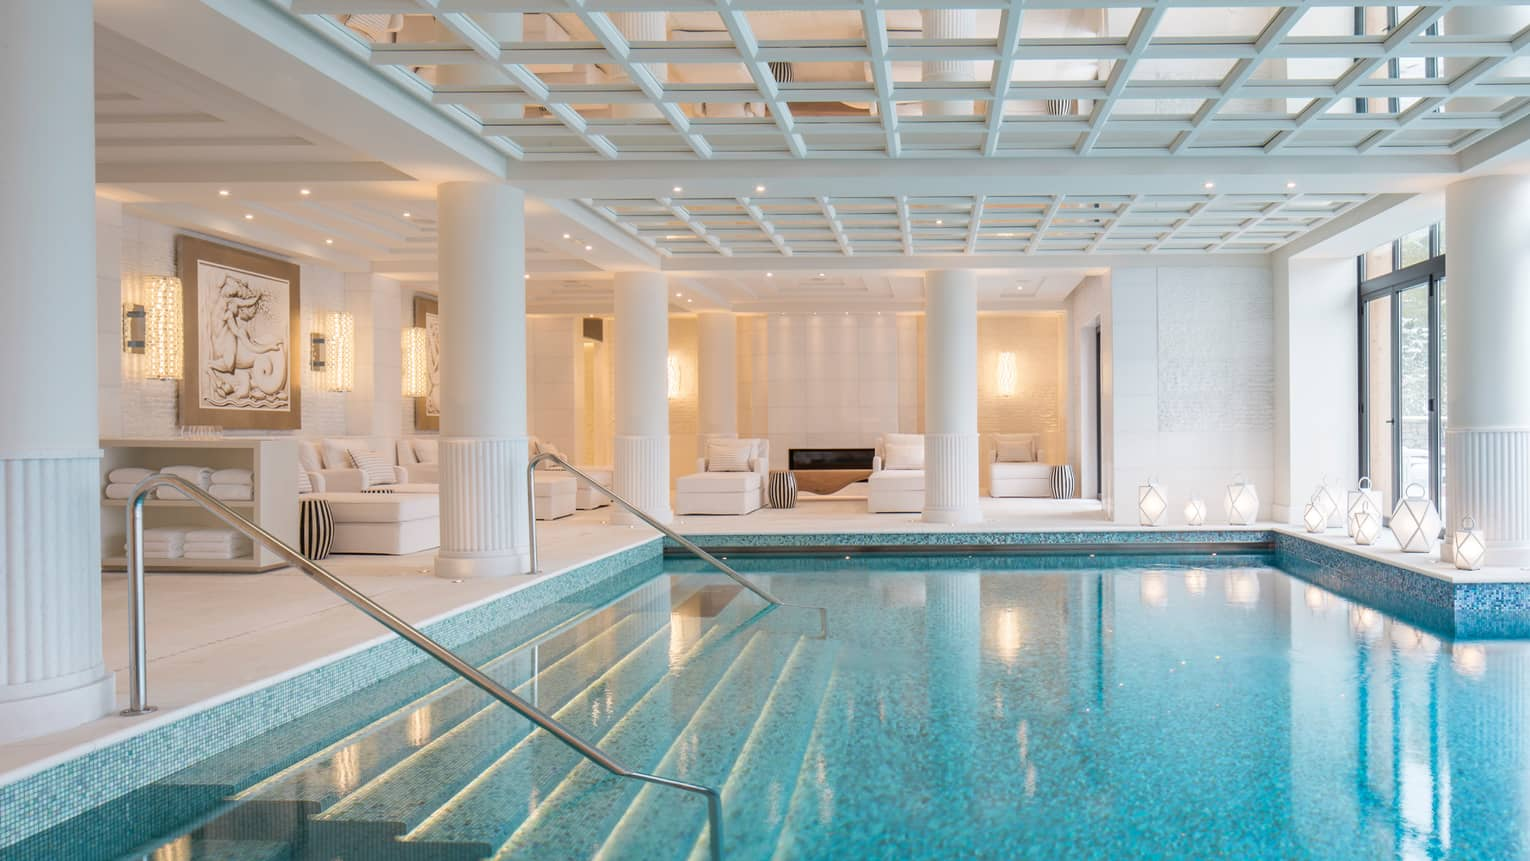 Indoor swimming pool under white beams, pillars, lounge chairs on deck